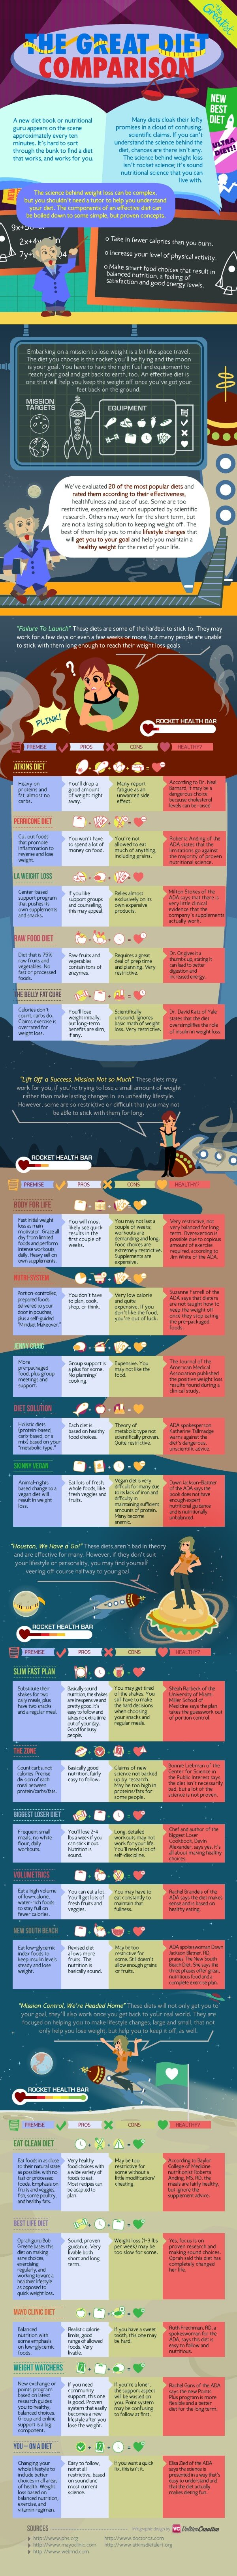 The Great Diet Comparison Infographic